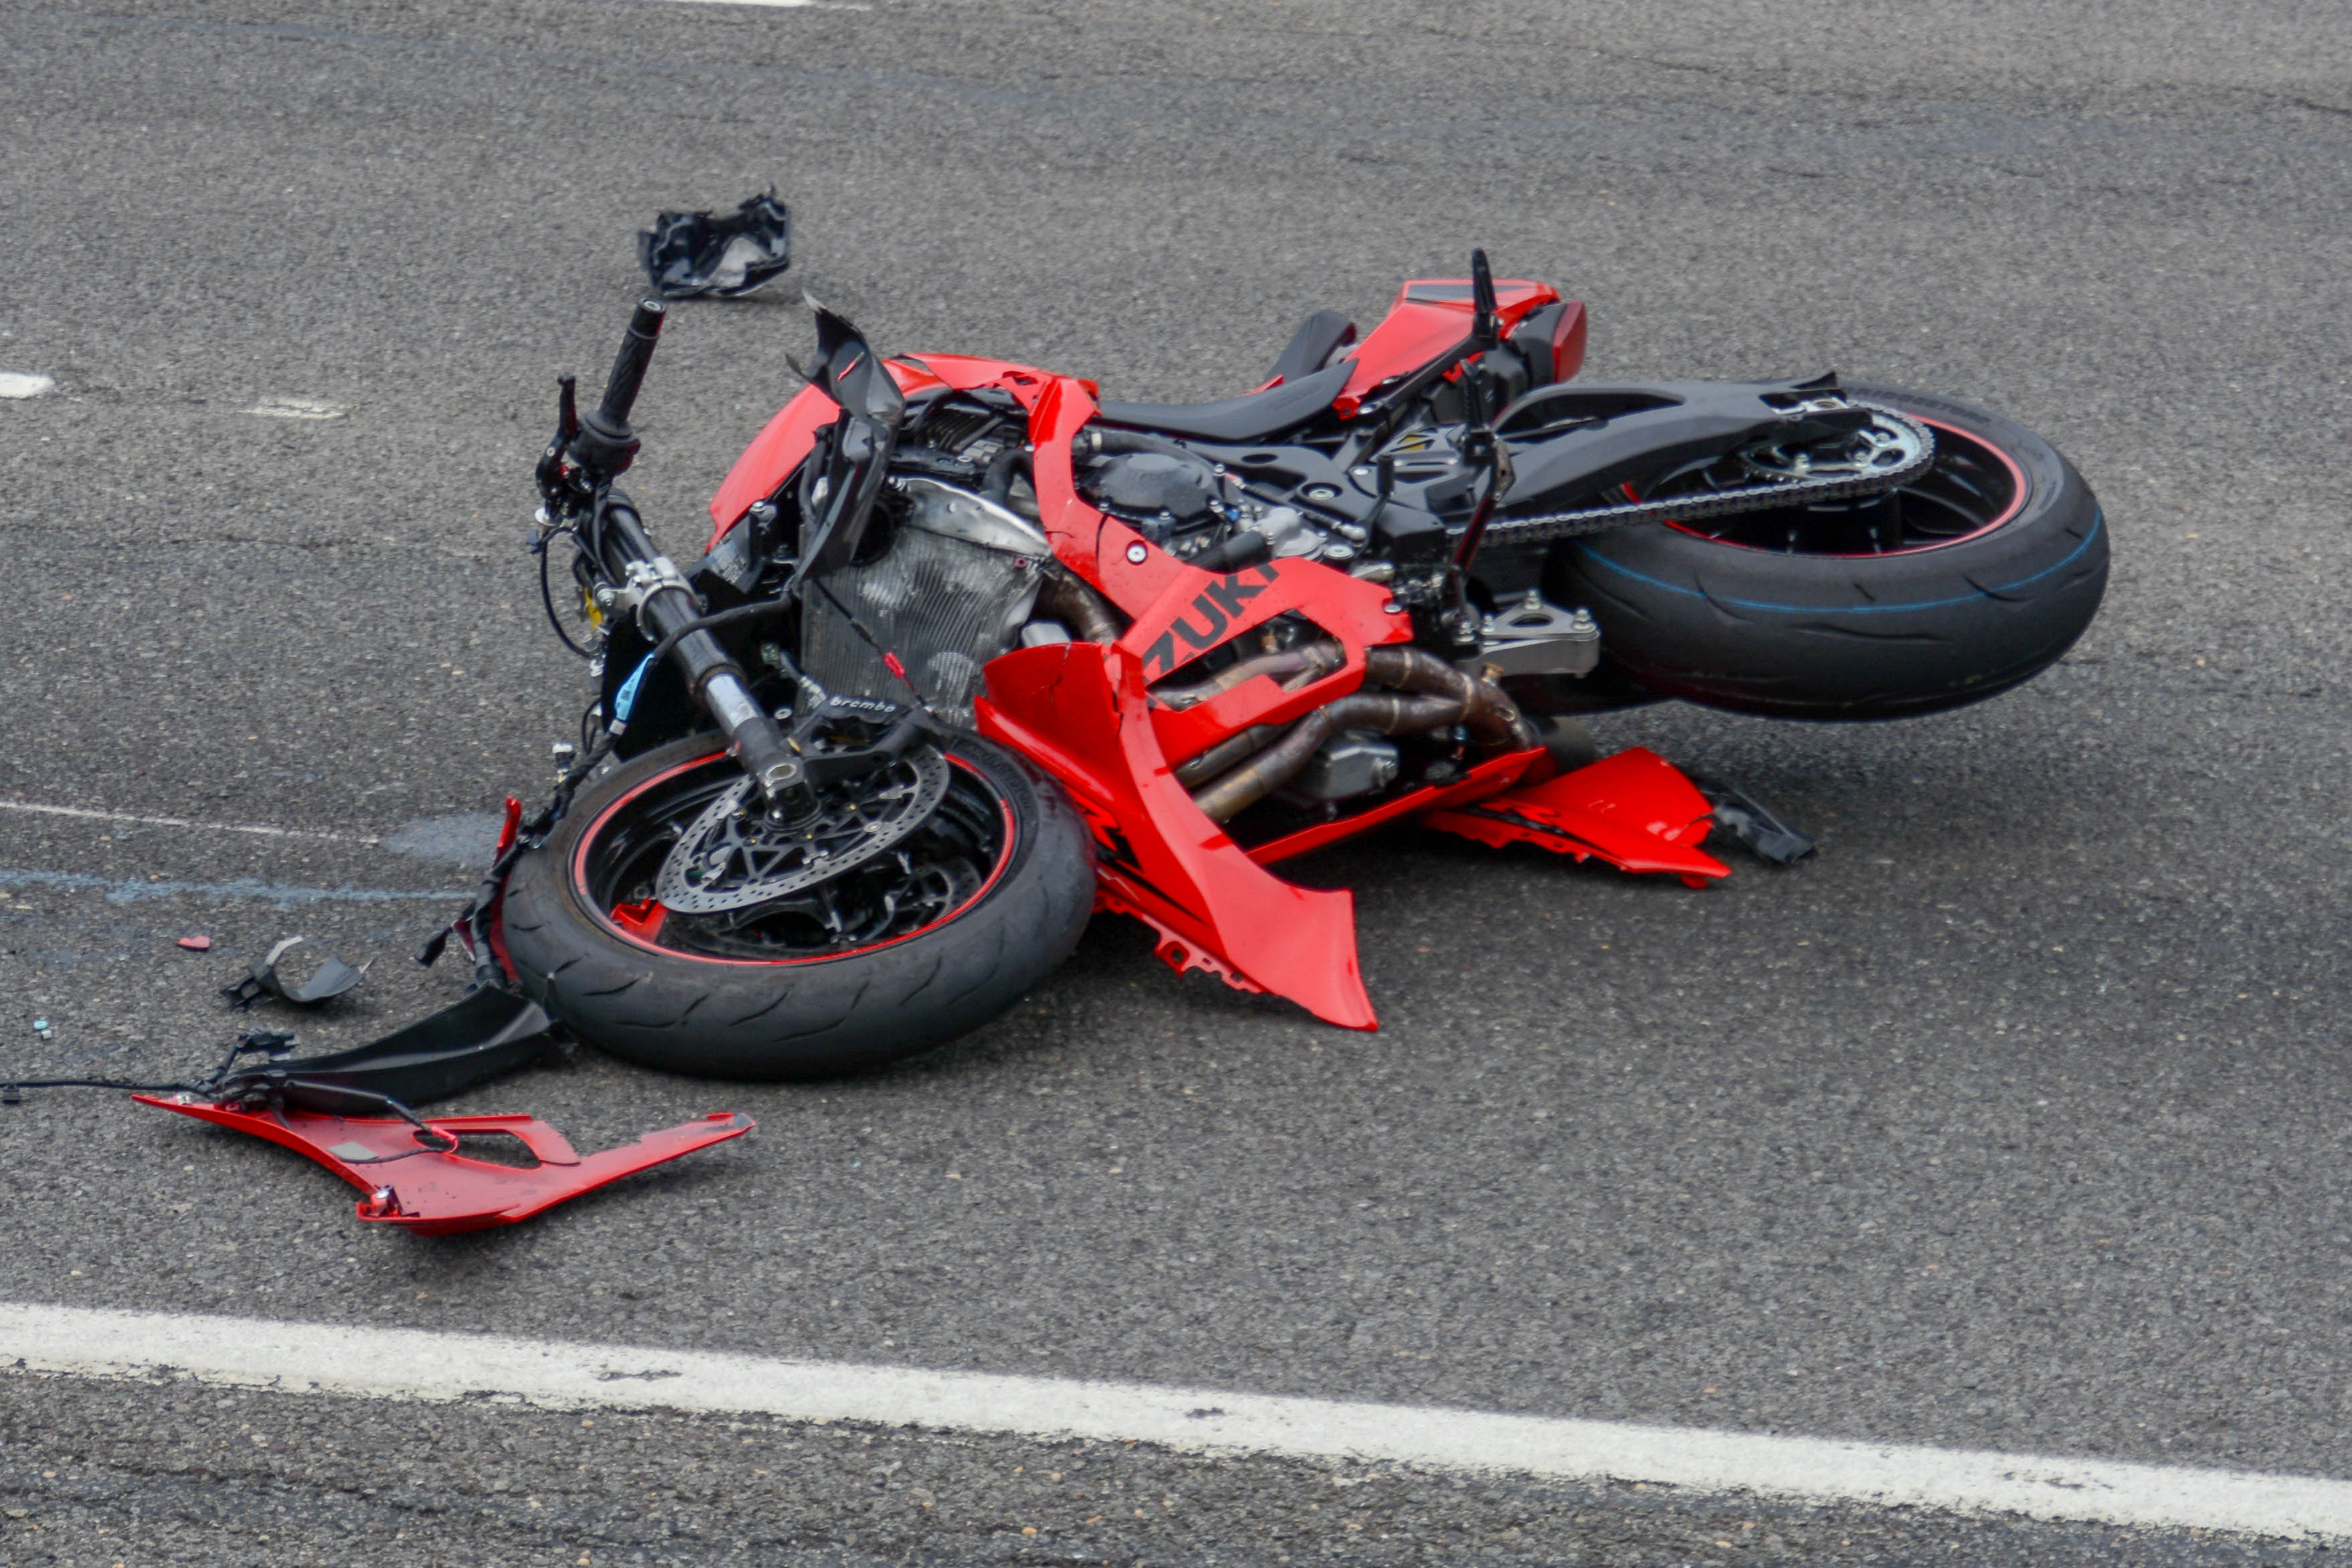 bhints Accident Motorcycle Articles